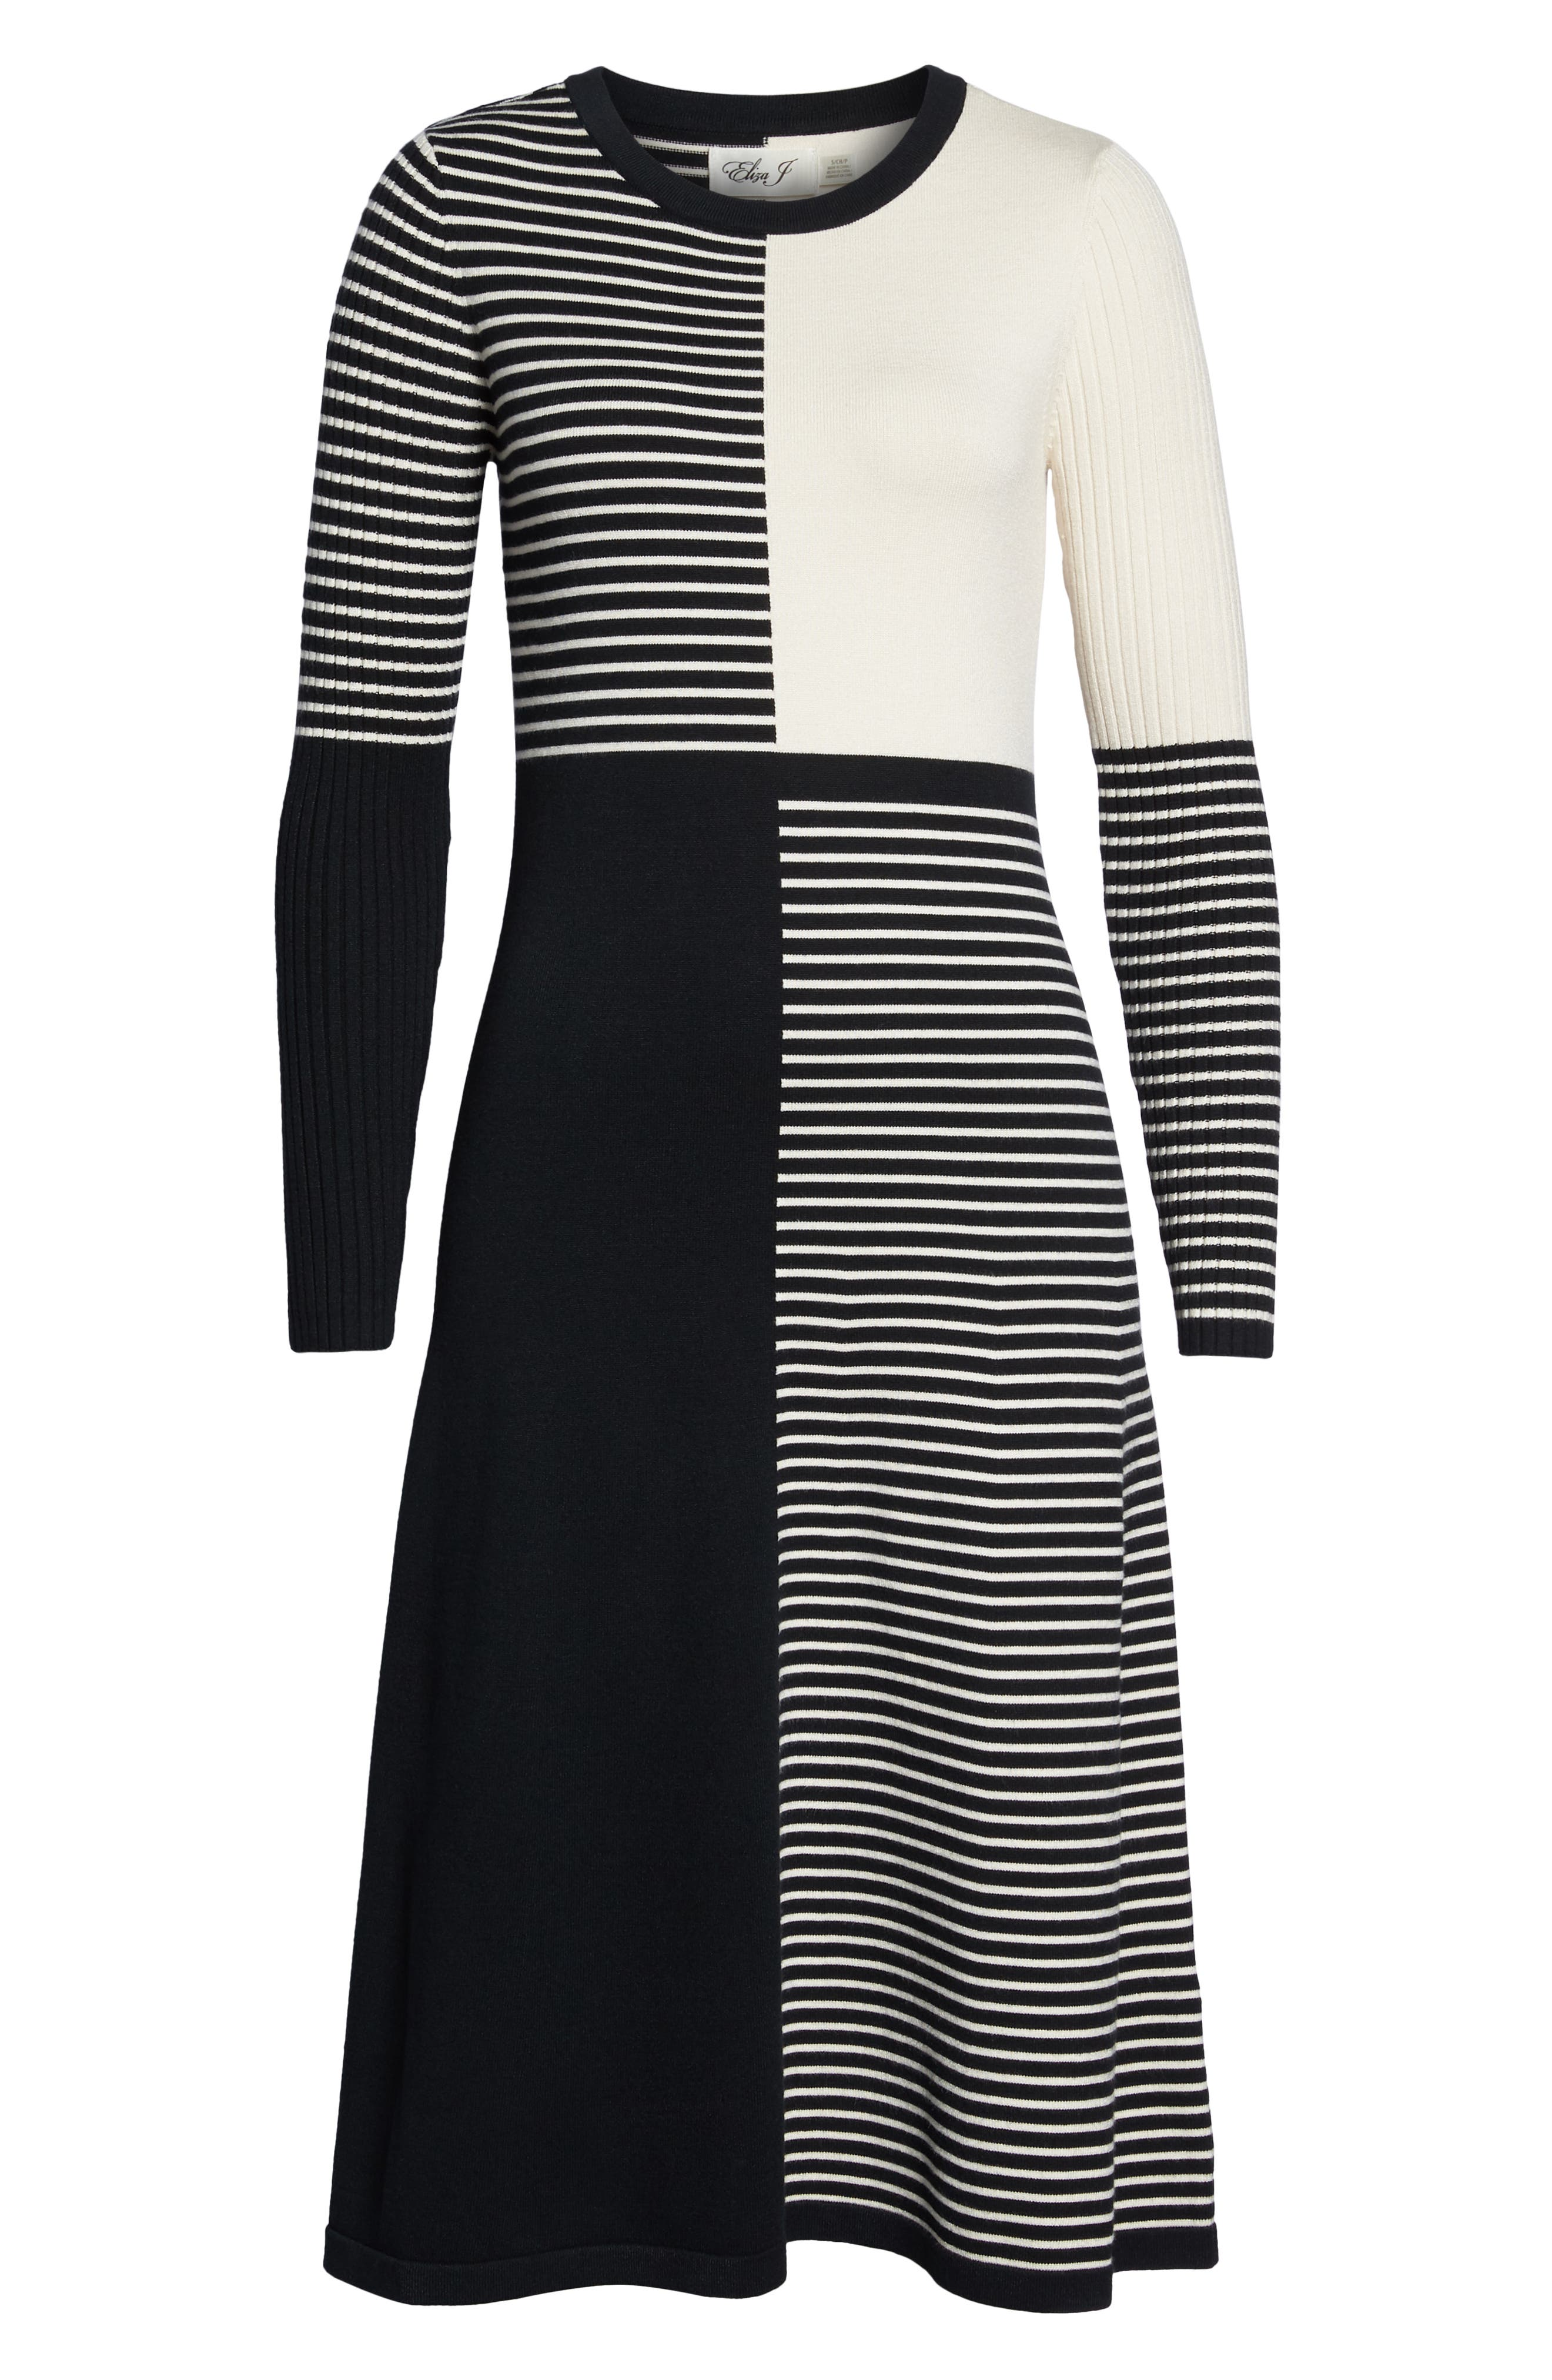 ELIZA J, Placed Stripe Sweater Dress, Alternate thumbnail 7, color, 900